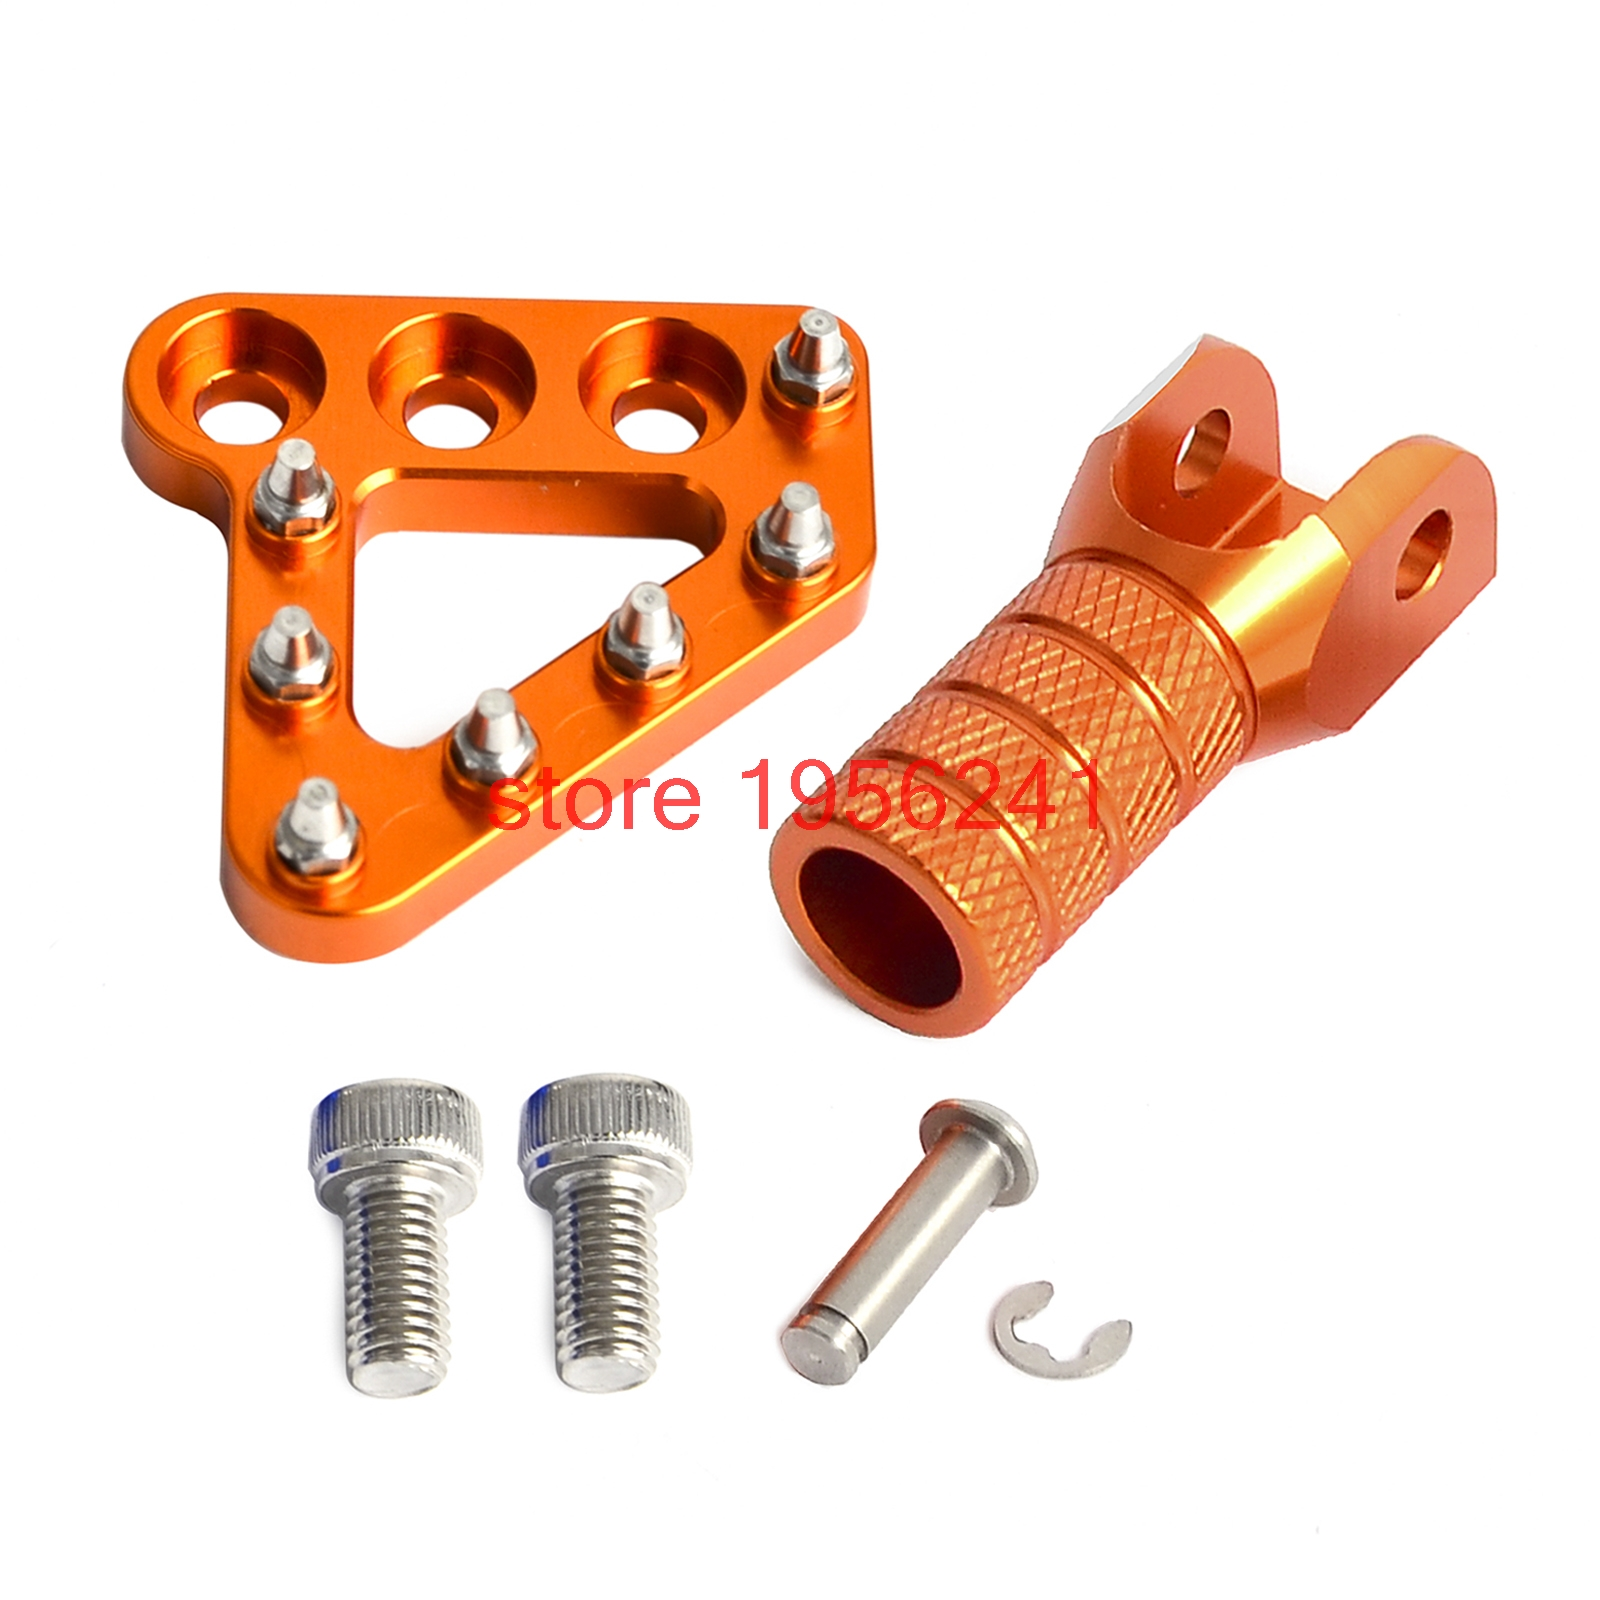 Brake Pedal Step Plate & Shifter Lever Tip for KTM EXC SX SXF XC XCF EXCF EXCW XCFW 125 200 250 300 350 400 450 525 530 04-2015 orange cnc billet factory oil filter cover for ktm sx exc xc f xcf w 250 400 450 520 525 540 950 990